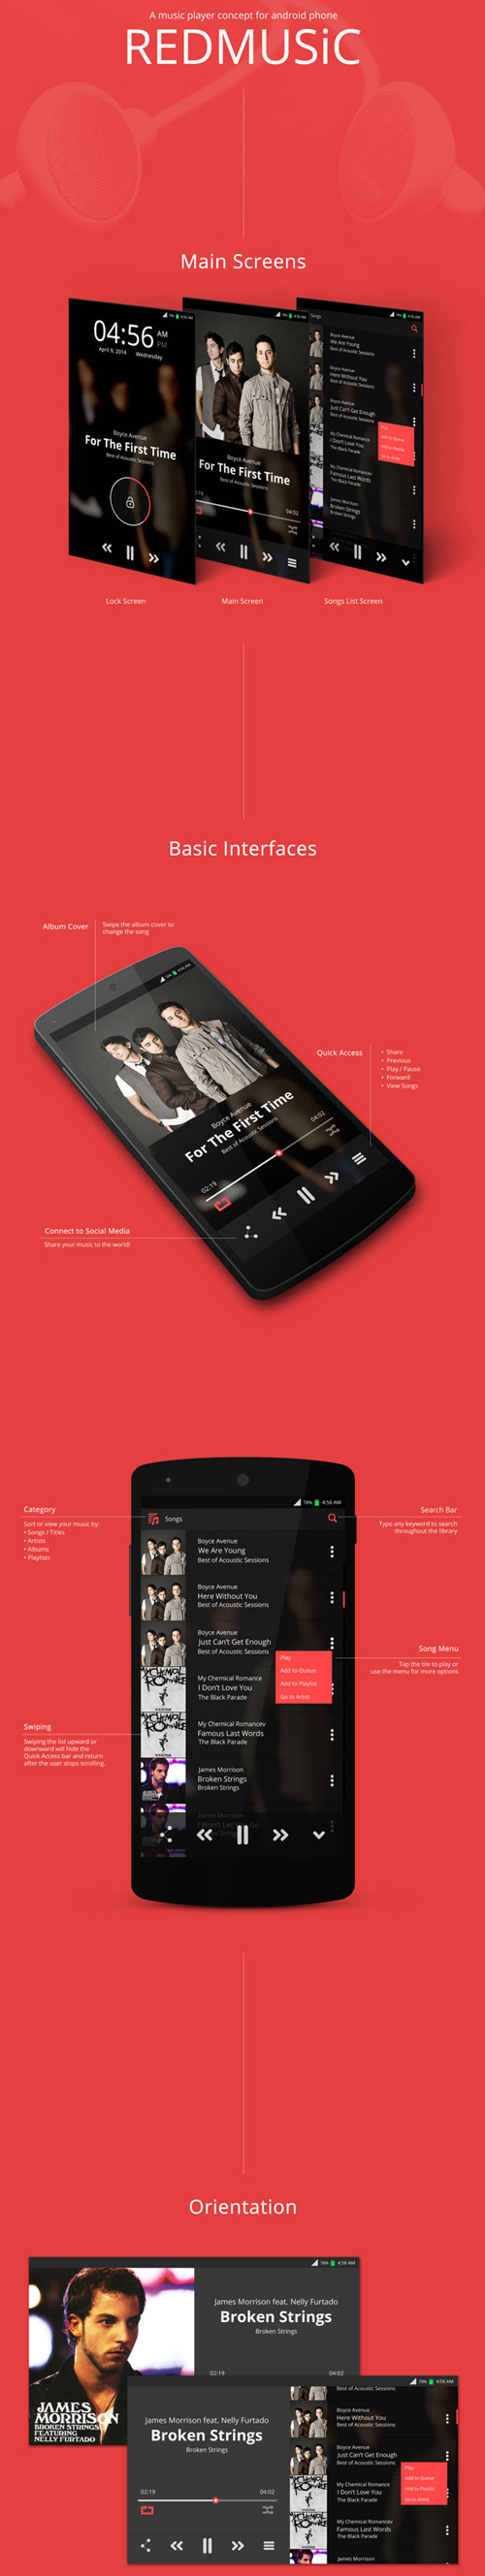 Amazing Mobile App UI Designs with Ultimate User Experience - 44